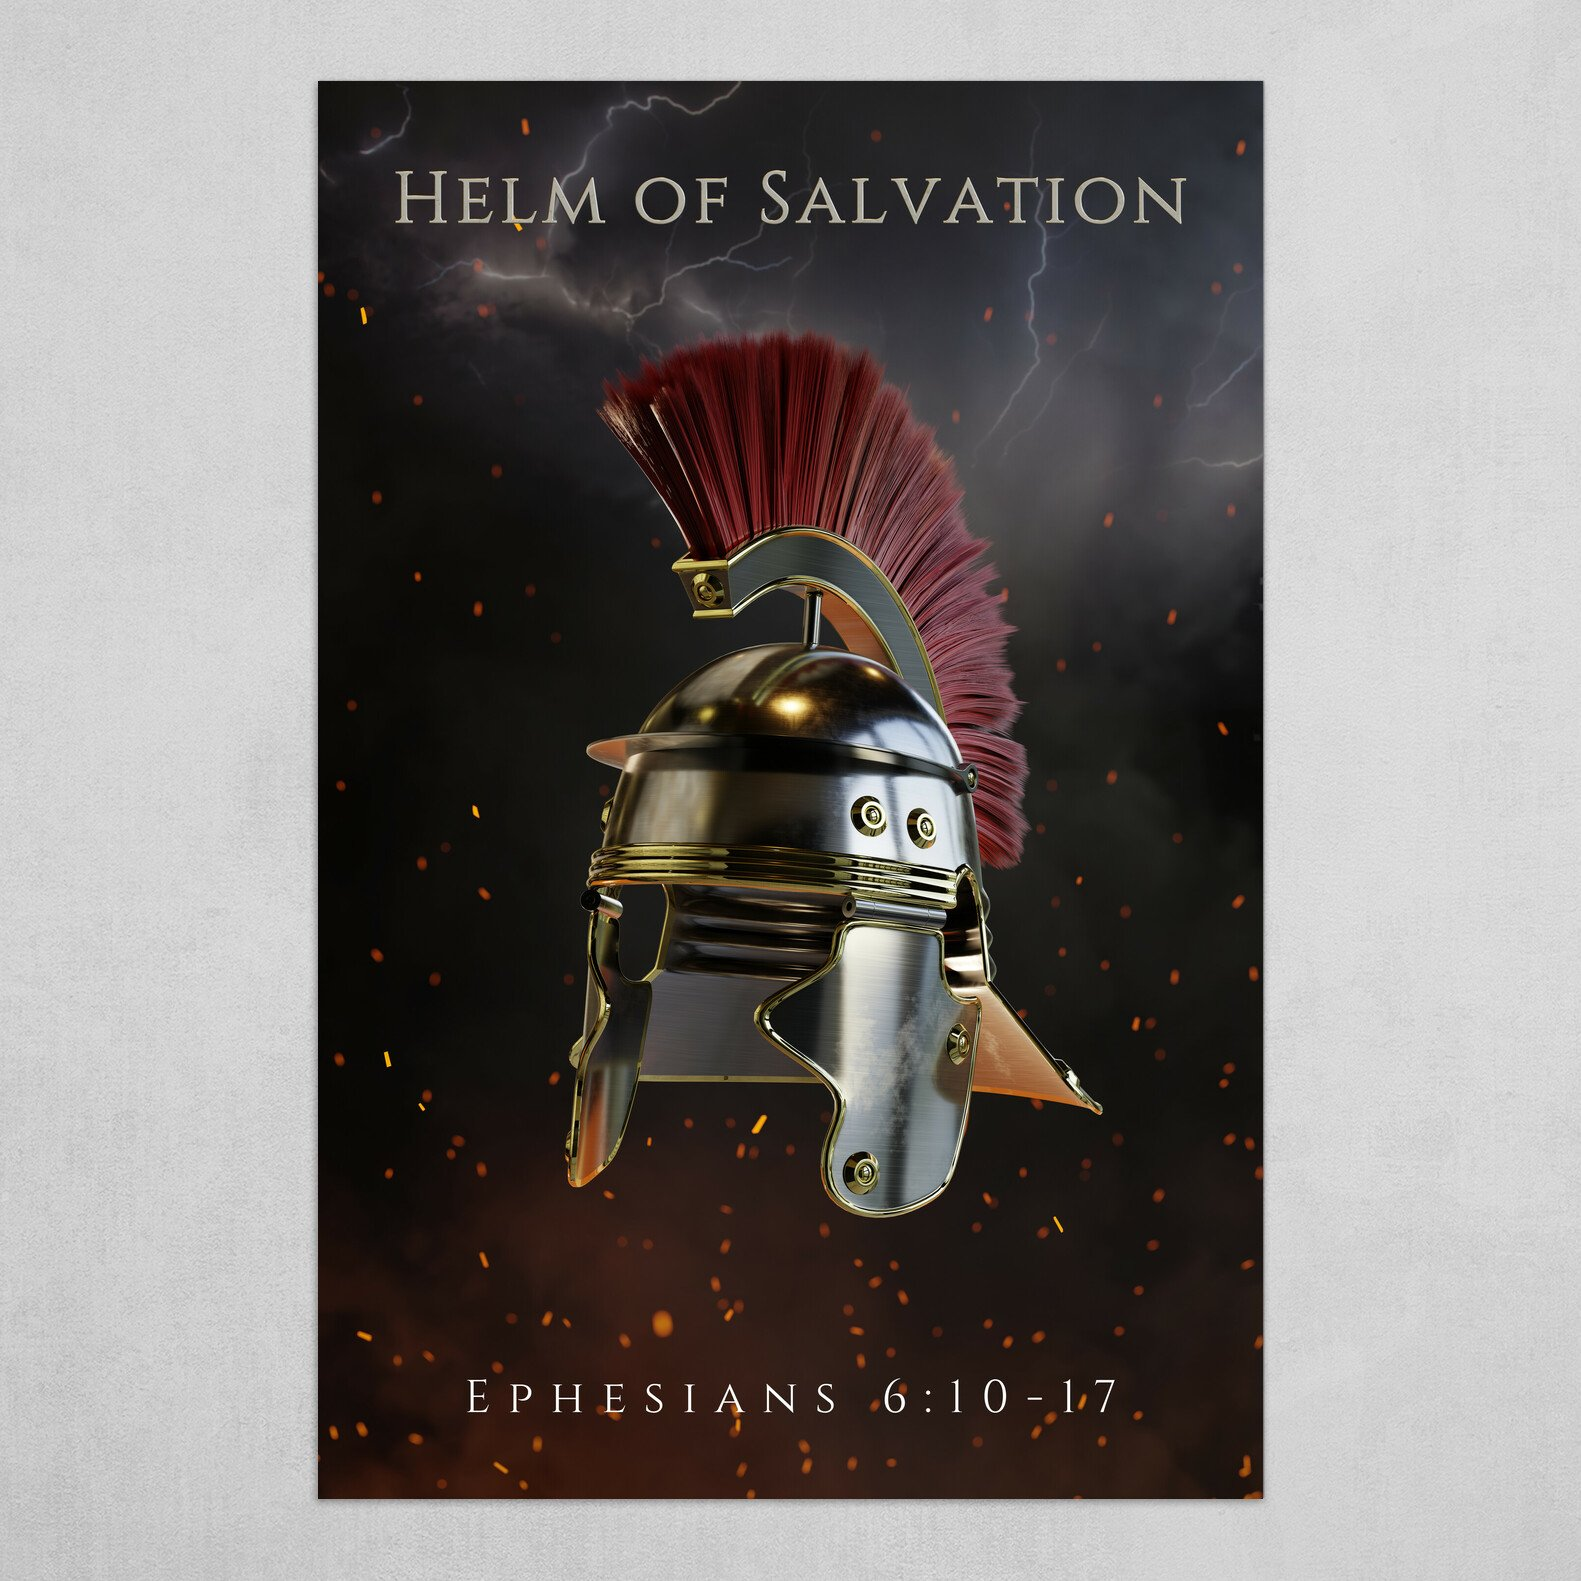 Helm of Salvation